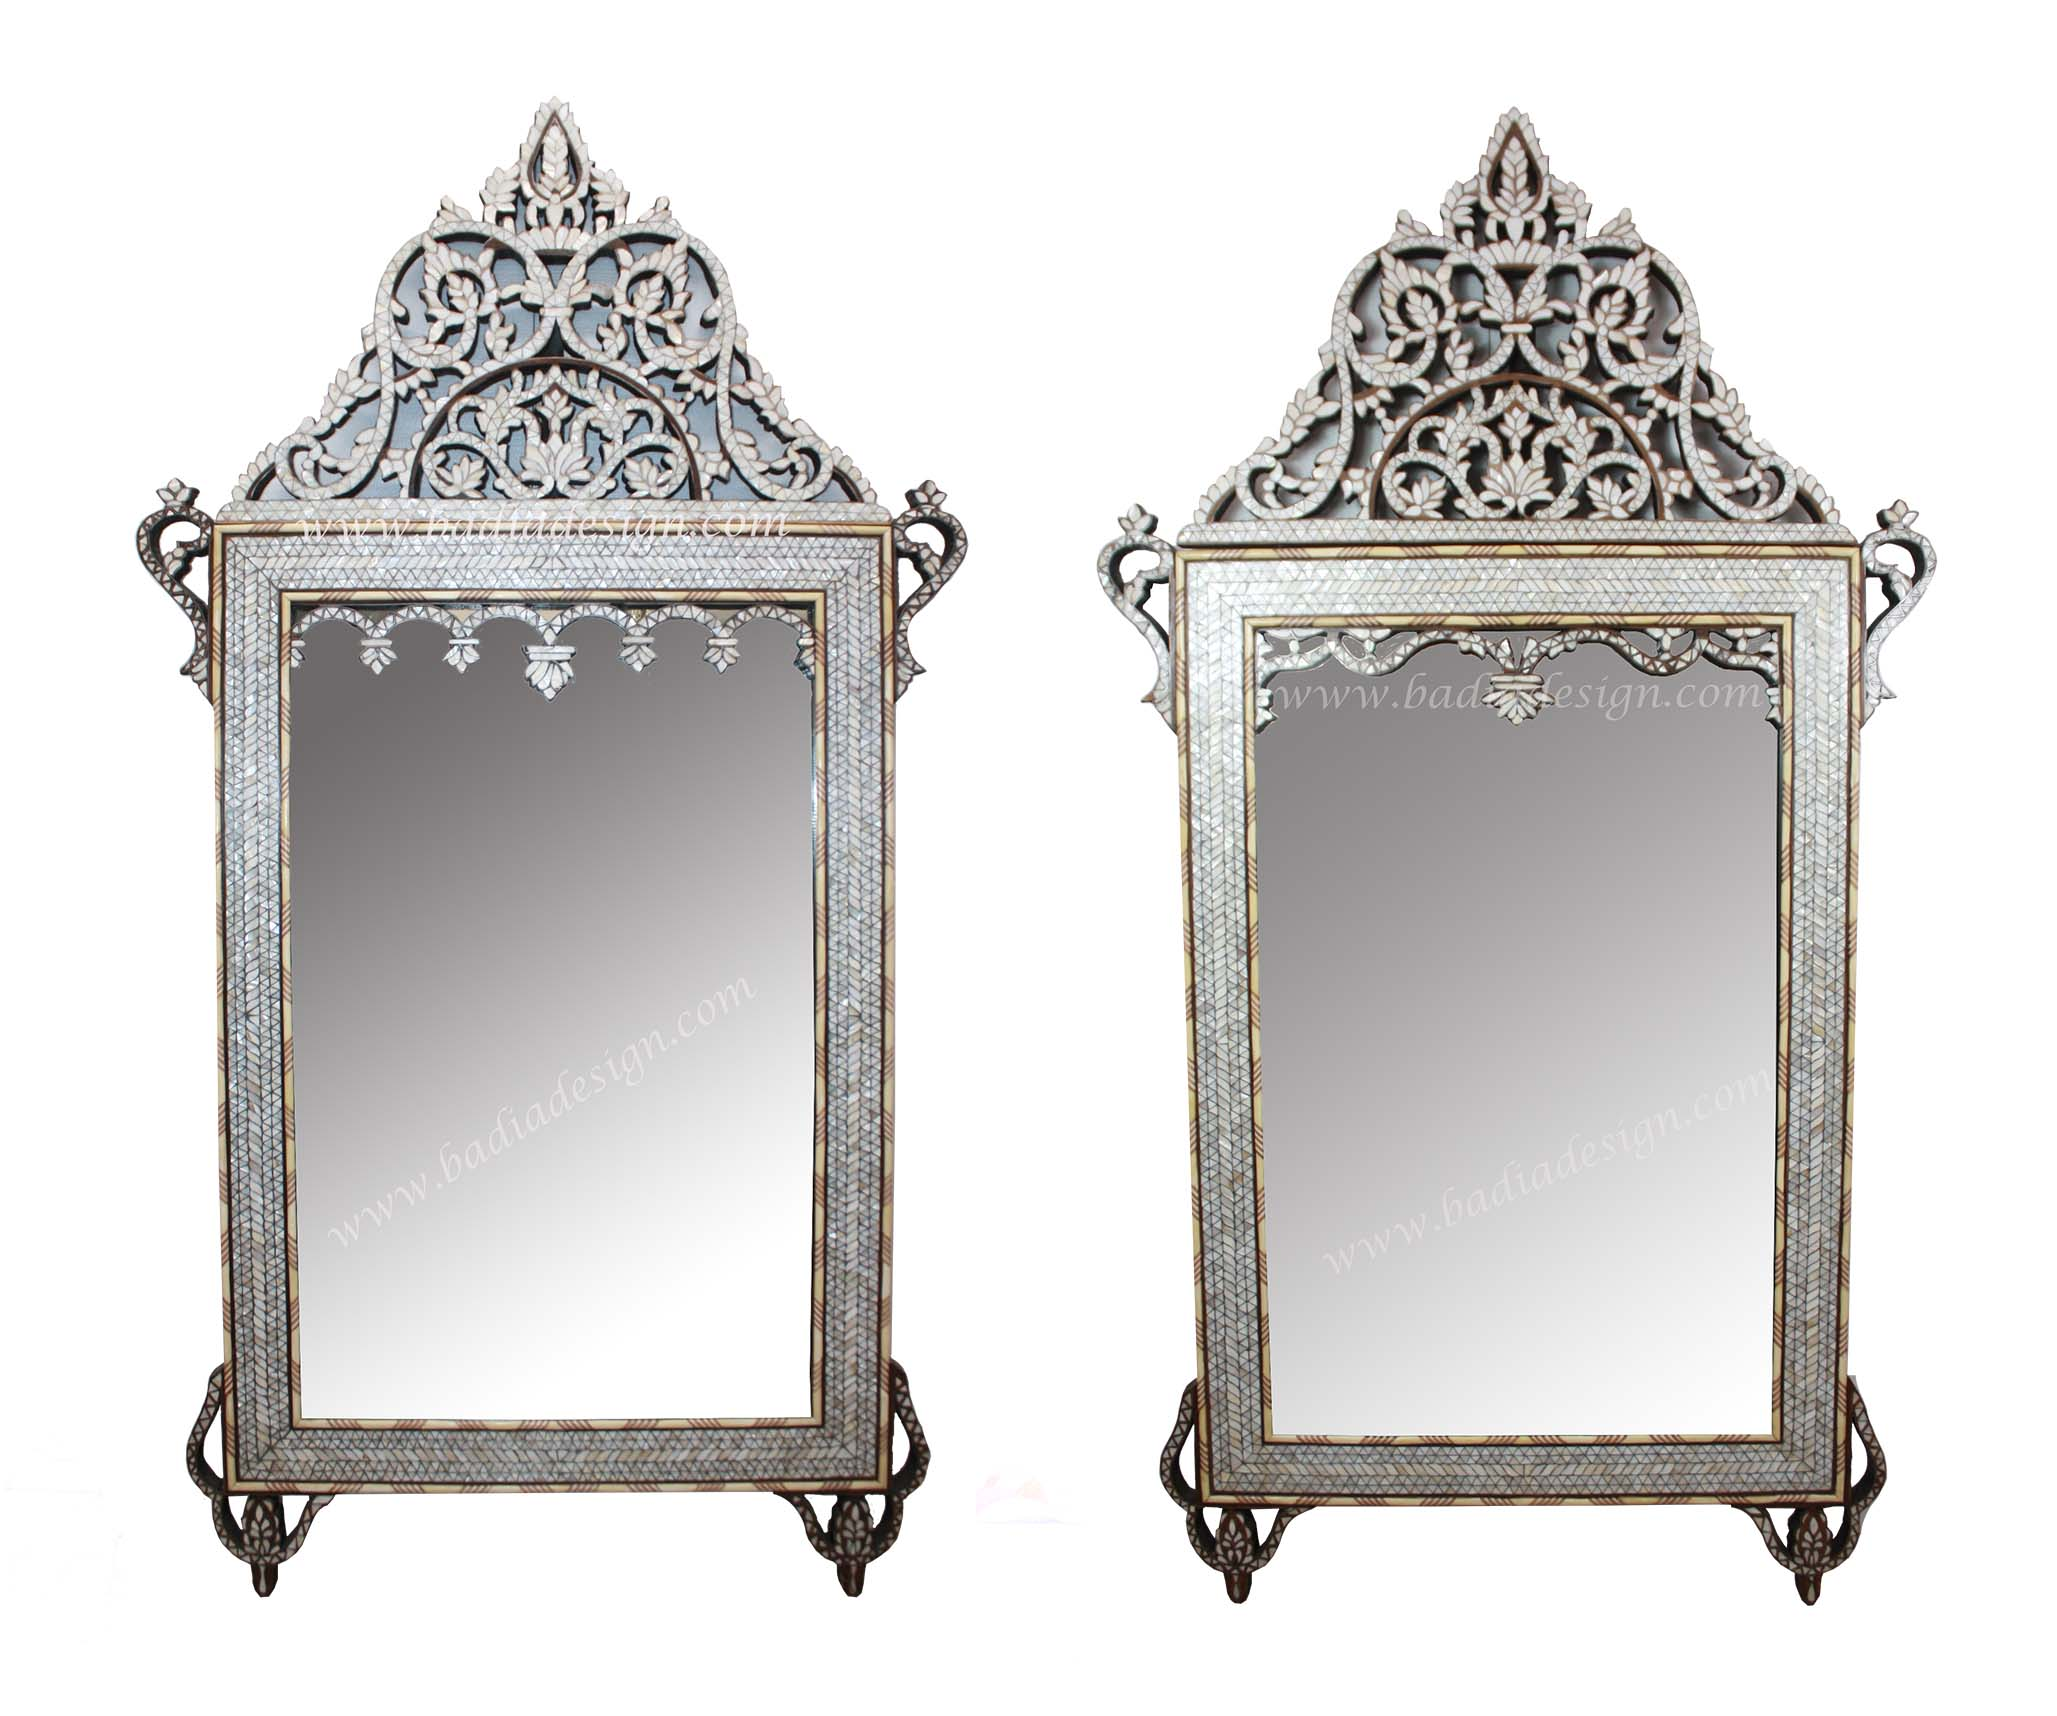 White mother of pearl mirror m mop024 jpg